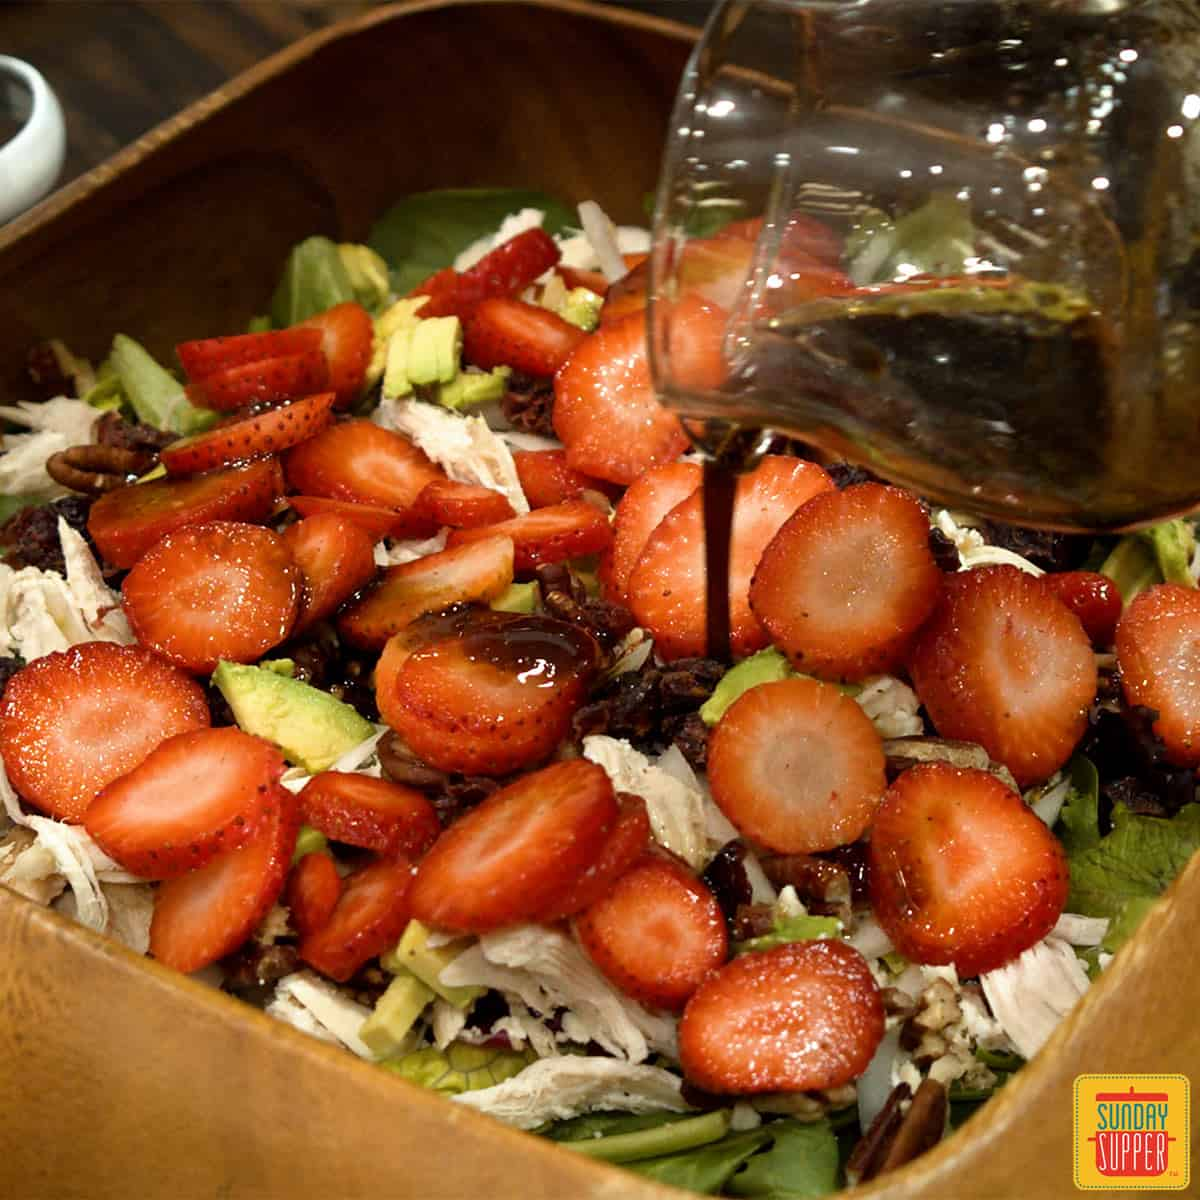 Pouring dressing over chicken salad recipe with strawberries